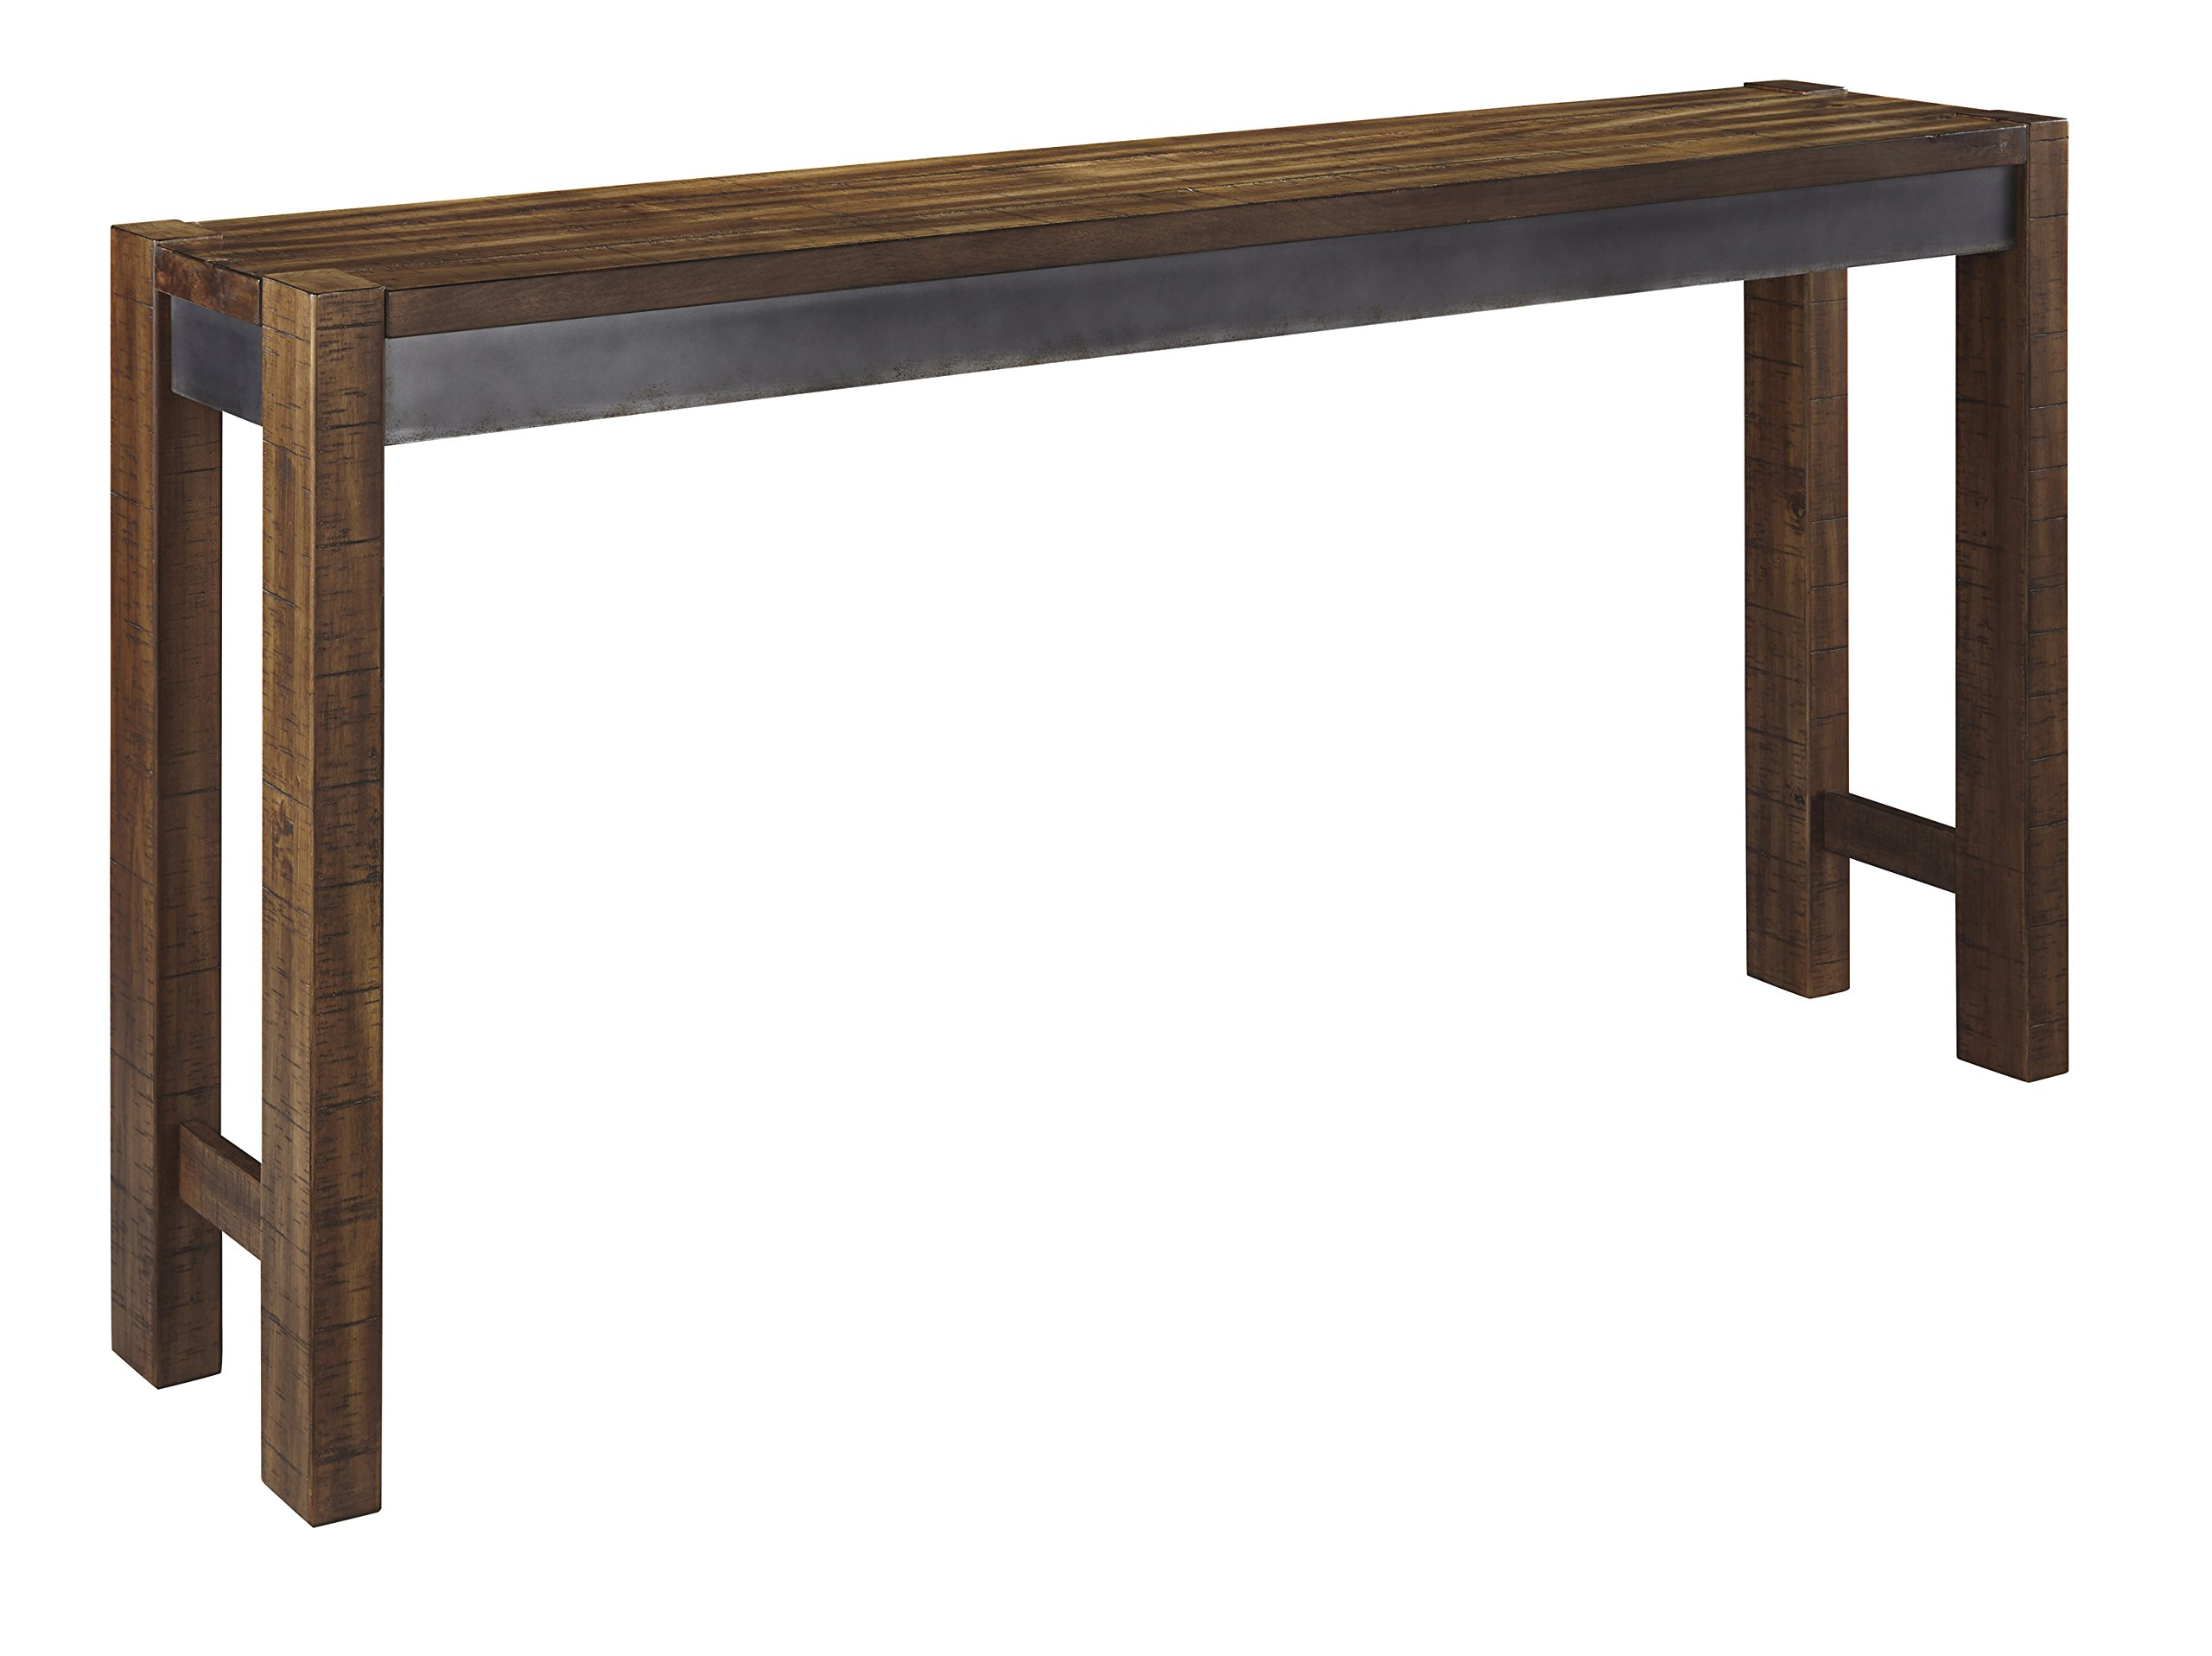 Torjin Long Counter Sofa Table in Brown and Gray